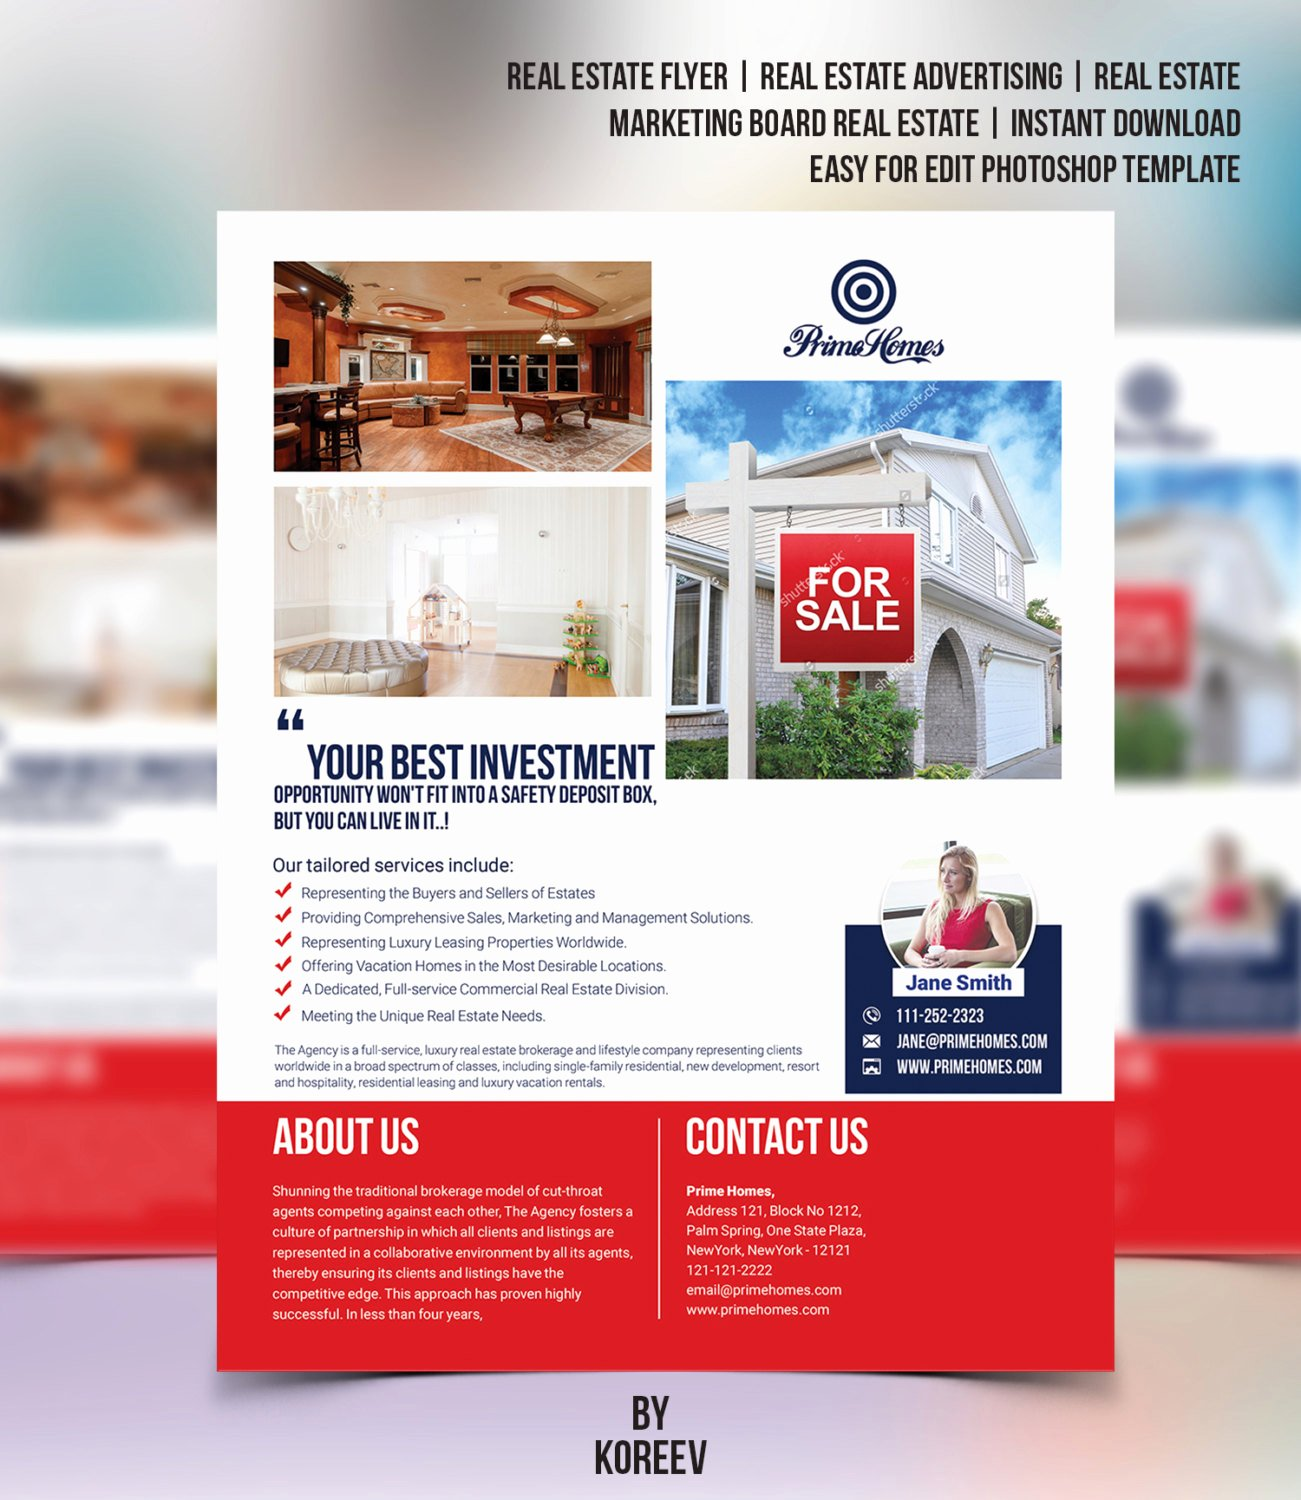 Real Estate Flyer Template Word Best Of Real Estate Flyer Editable In Microsoft Word Powerpoint